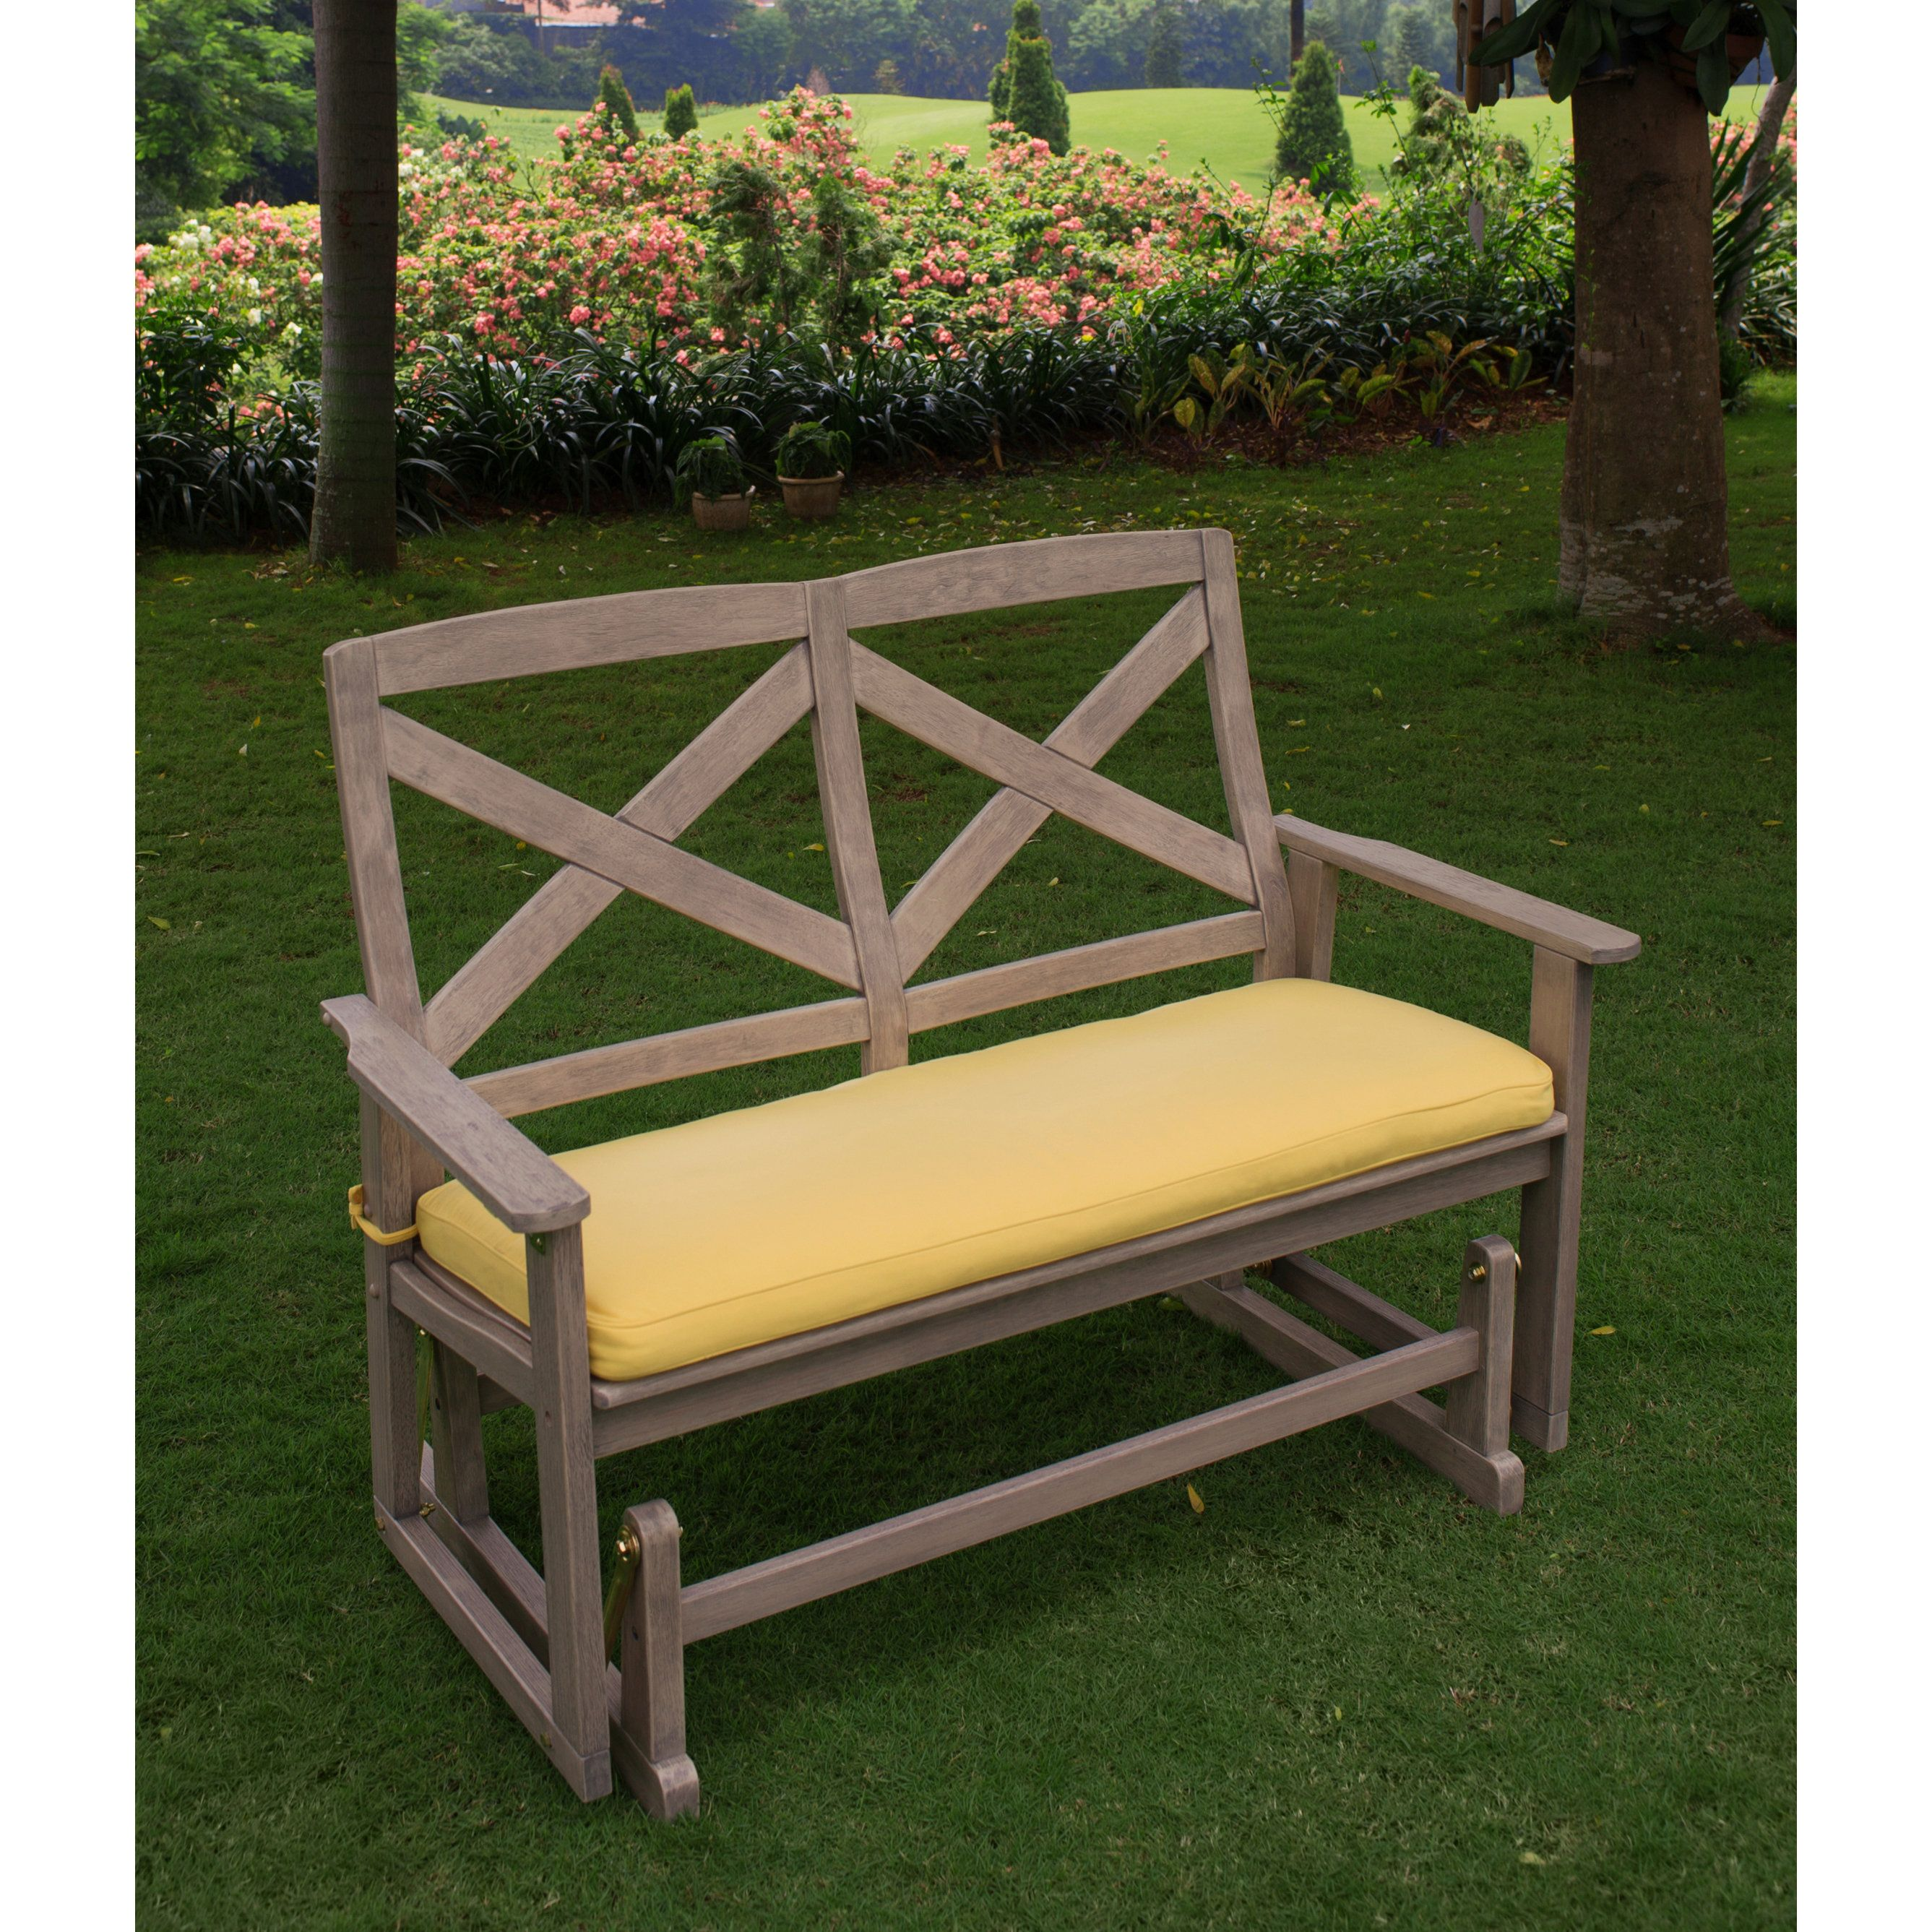 Glider Home Goods Free Shipping on orders over $45 at Overstock